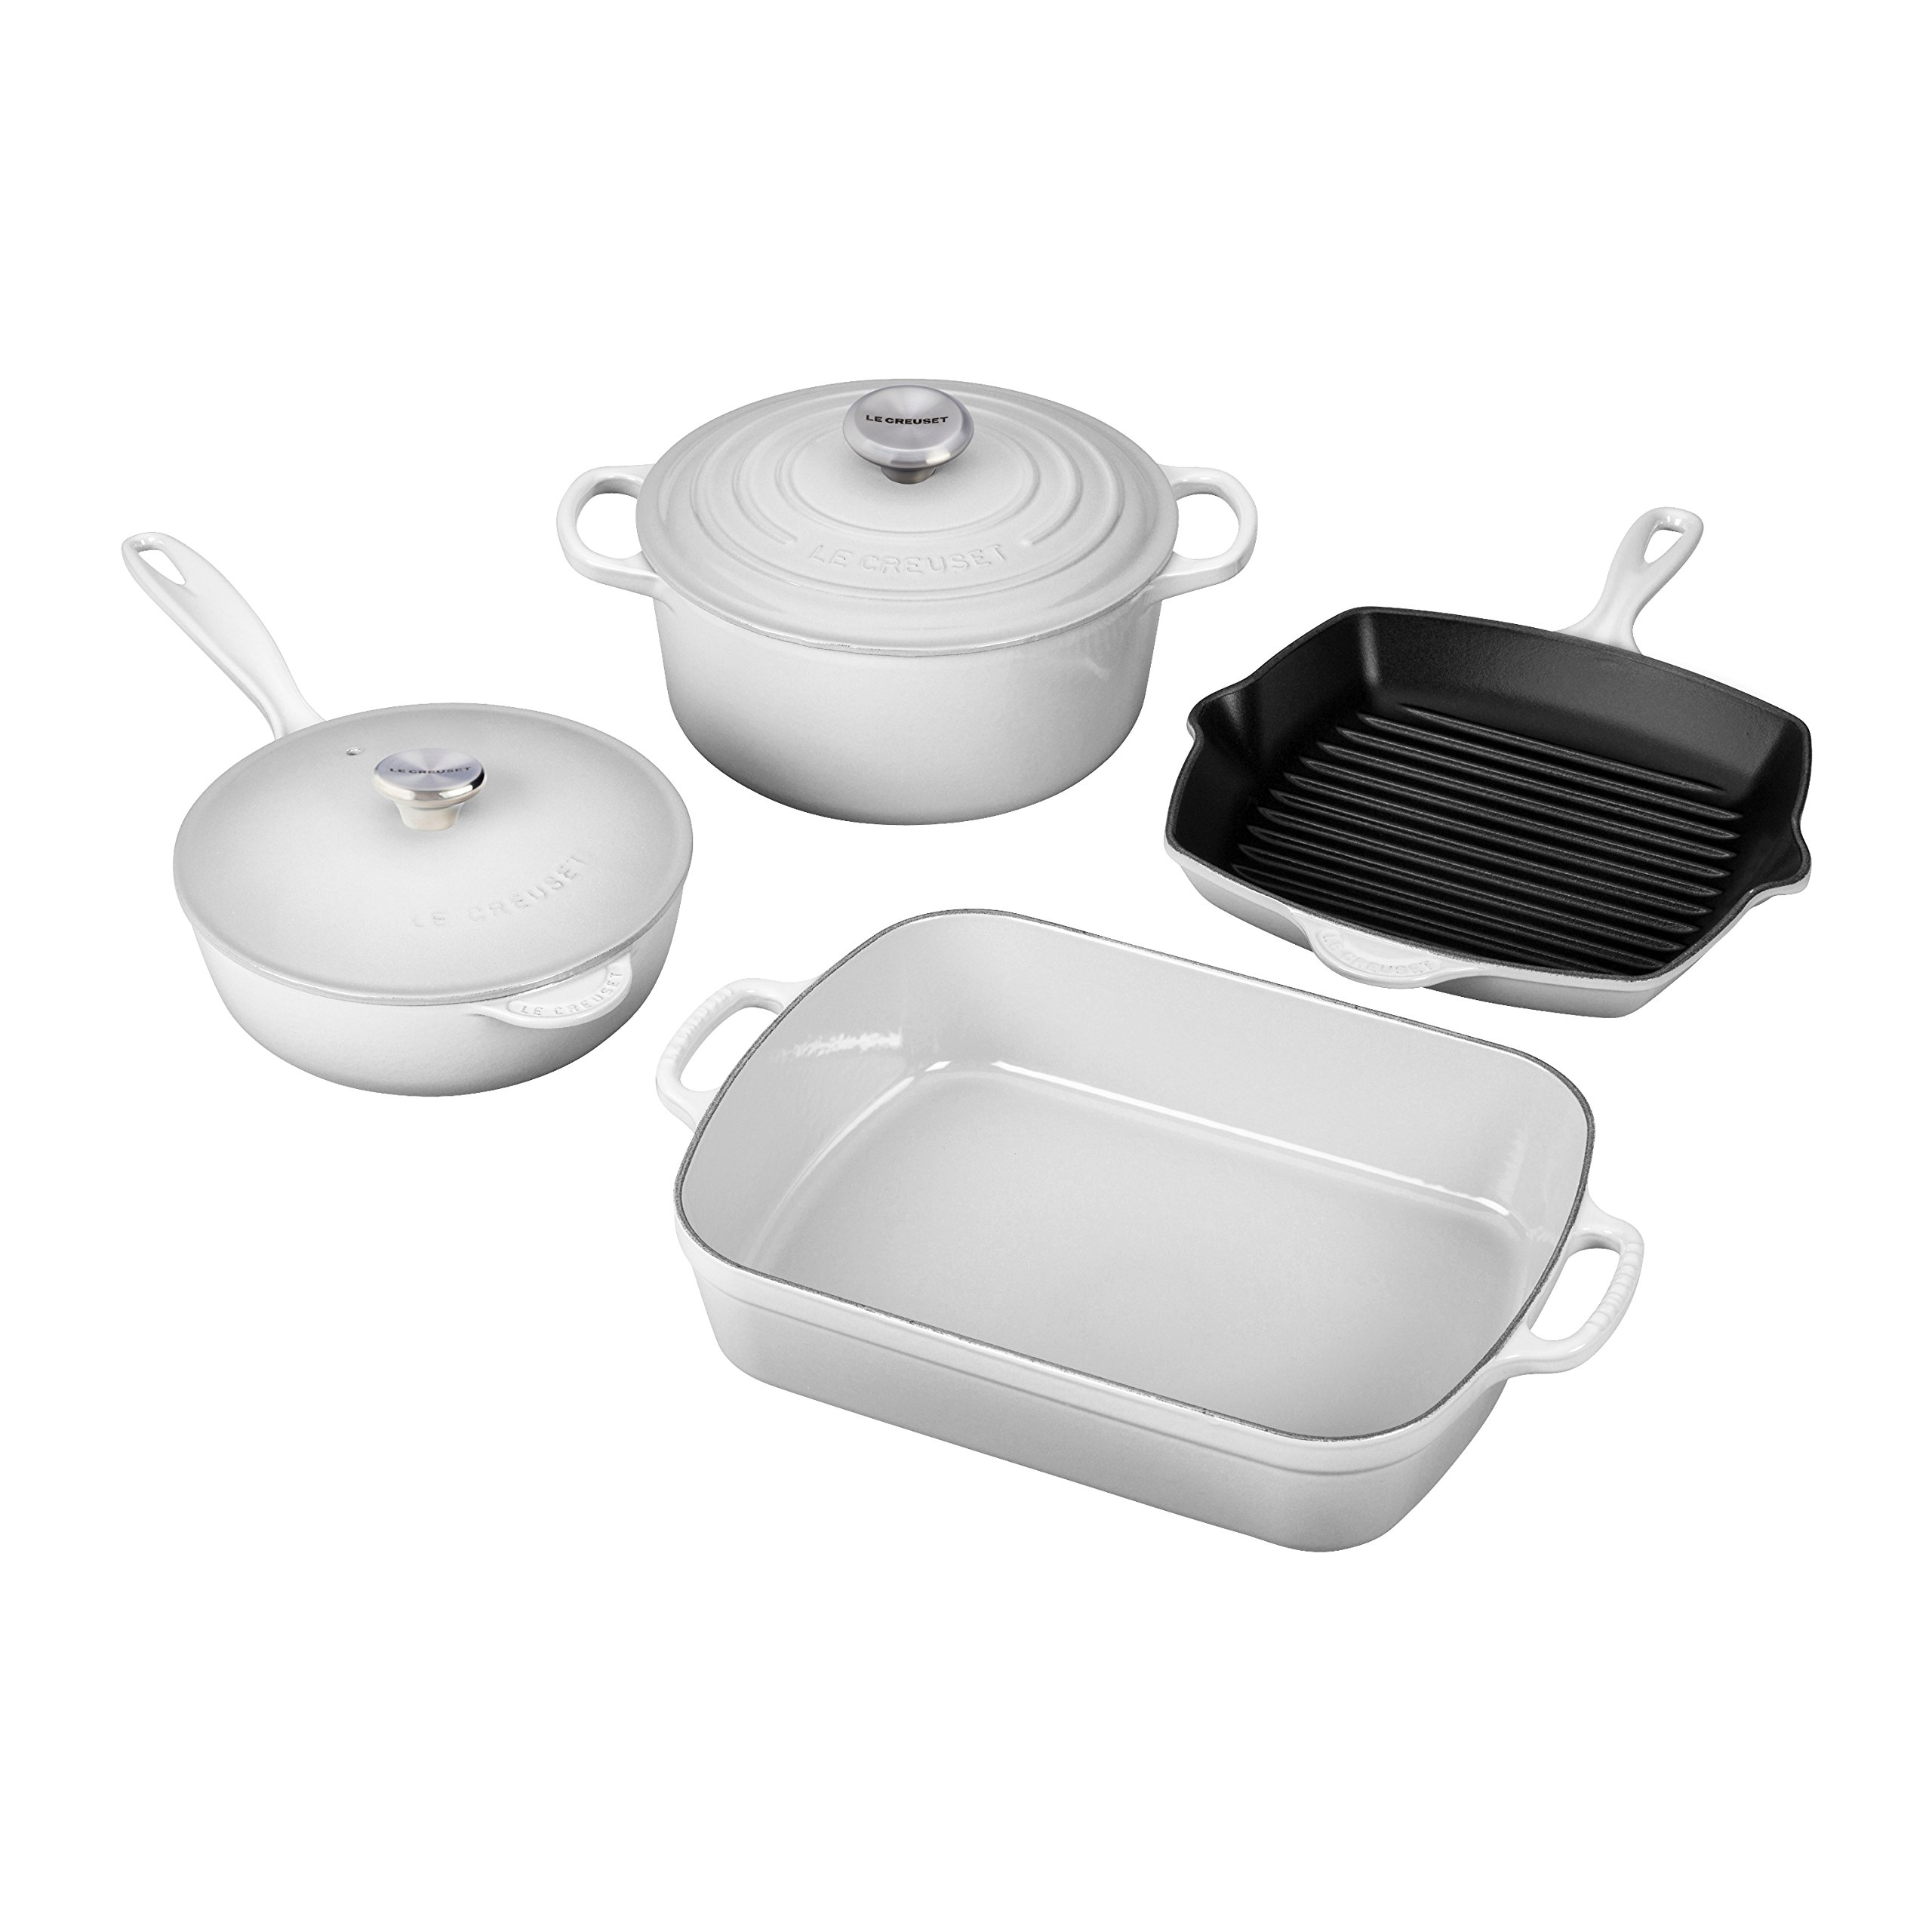 Le Creuset MS1406-16SS Enameled Cast Iron 6 Piece Signature Set, White